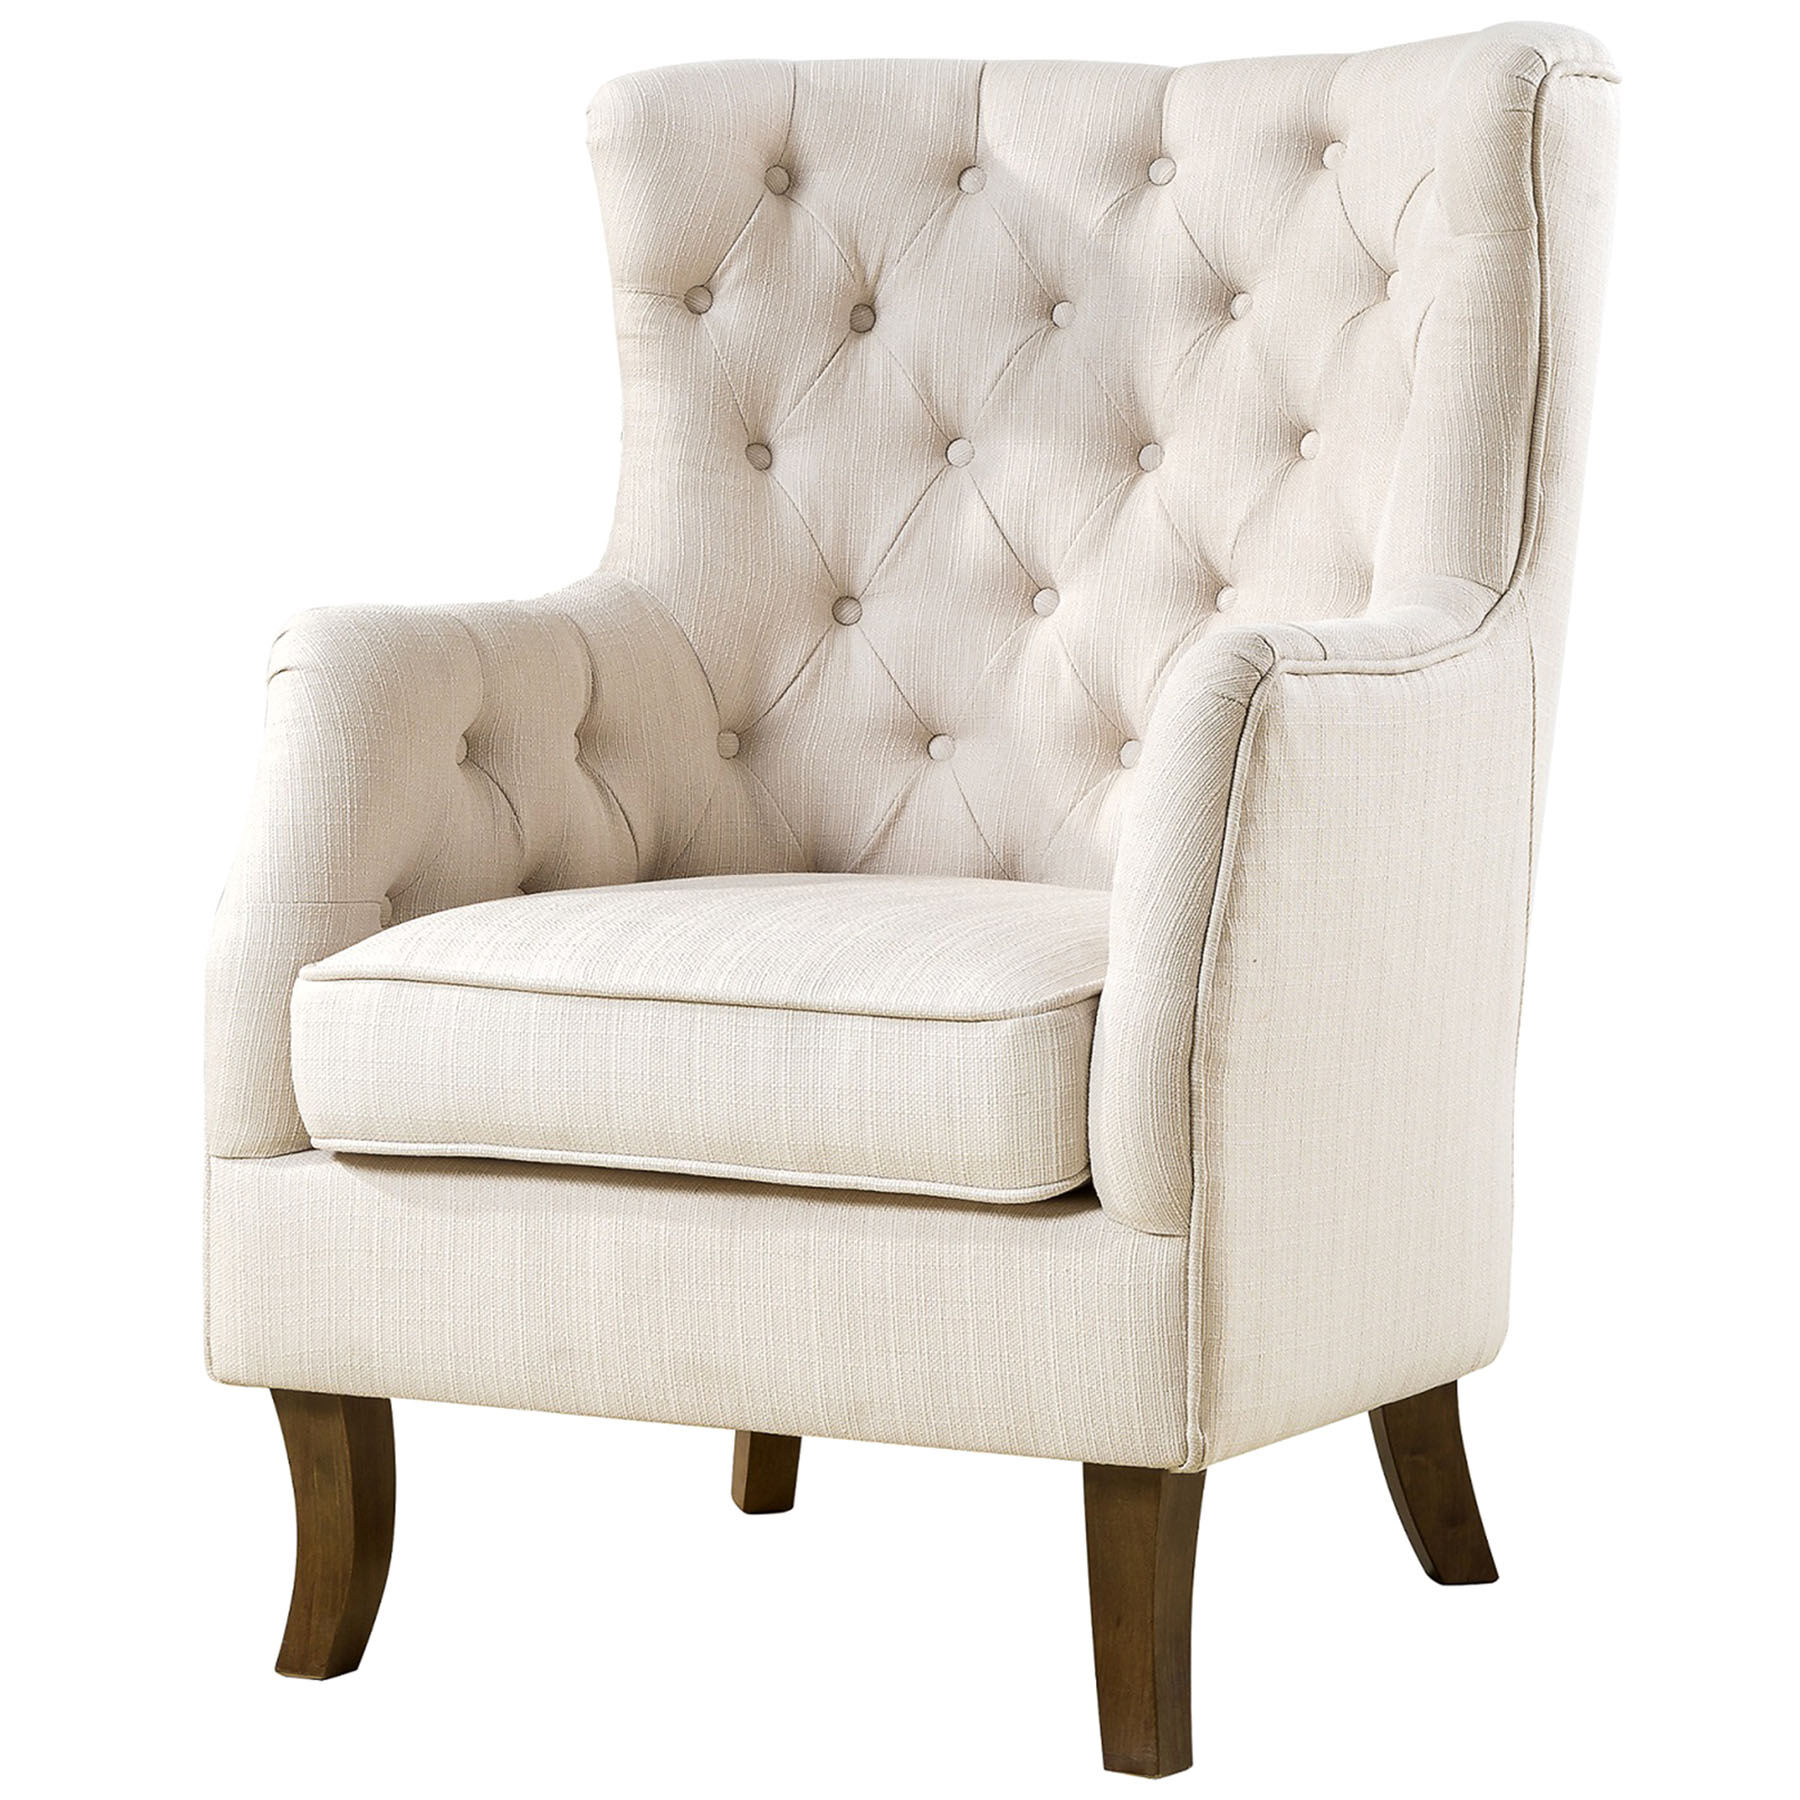 accent chairs under 50 dollars chair rentals orlando collection at home stores product 124260301